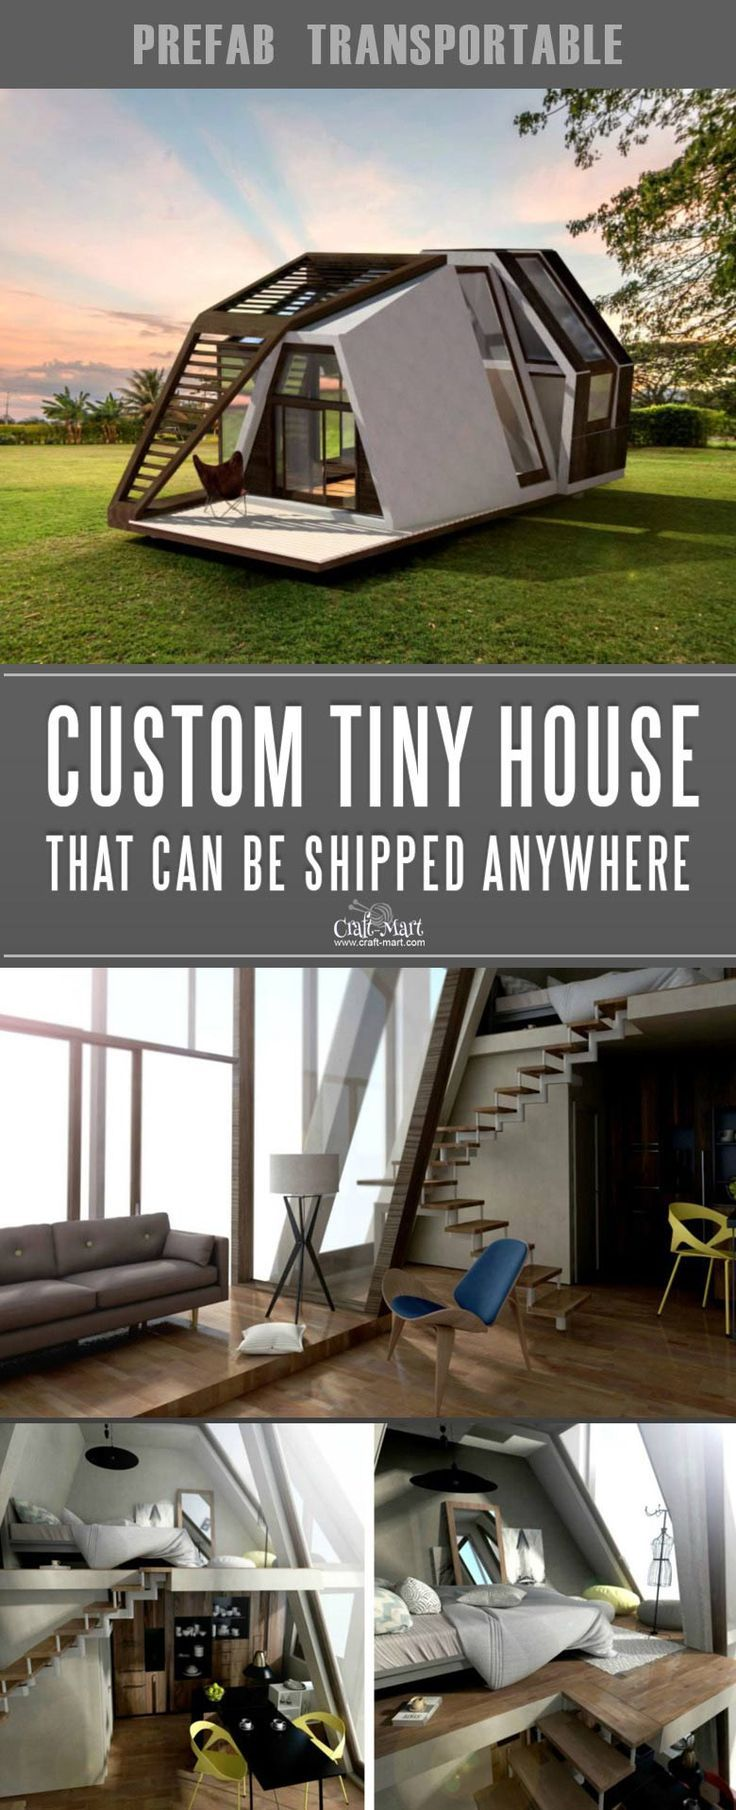 Custom tiny house that you can order from anywhere in the world look at these absolutely awesome houses afford some are sustainable also high tech prefab most of us share all your rh pinterest